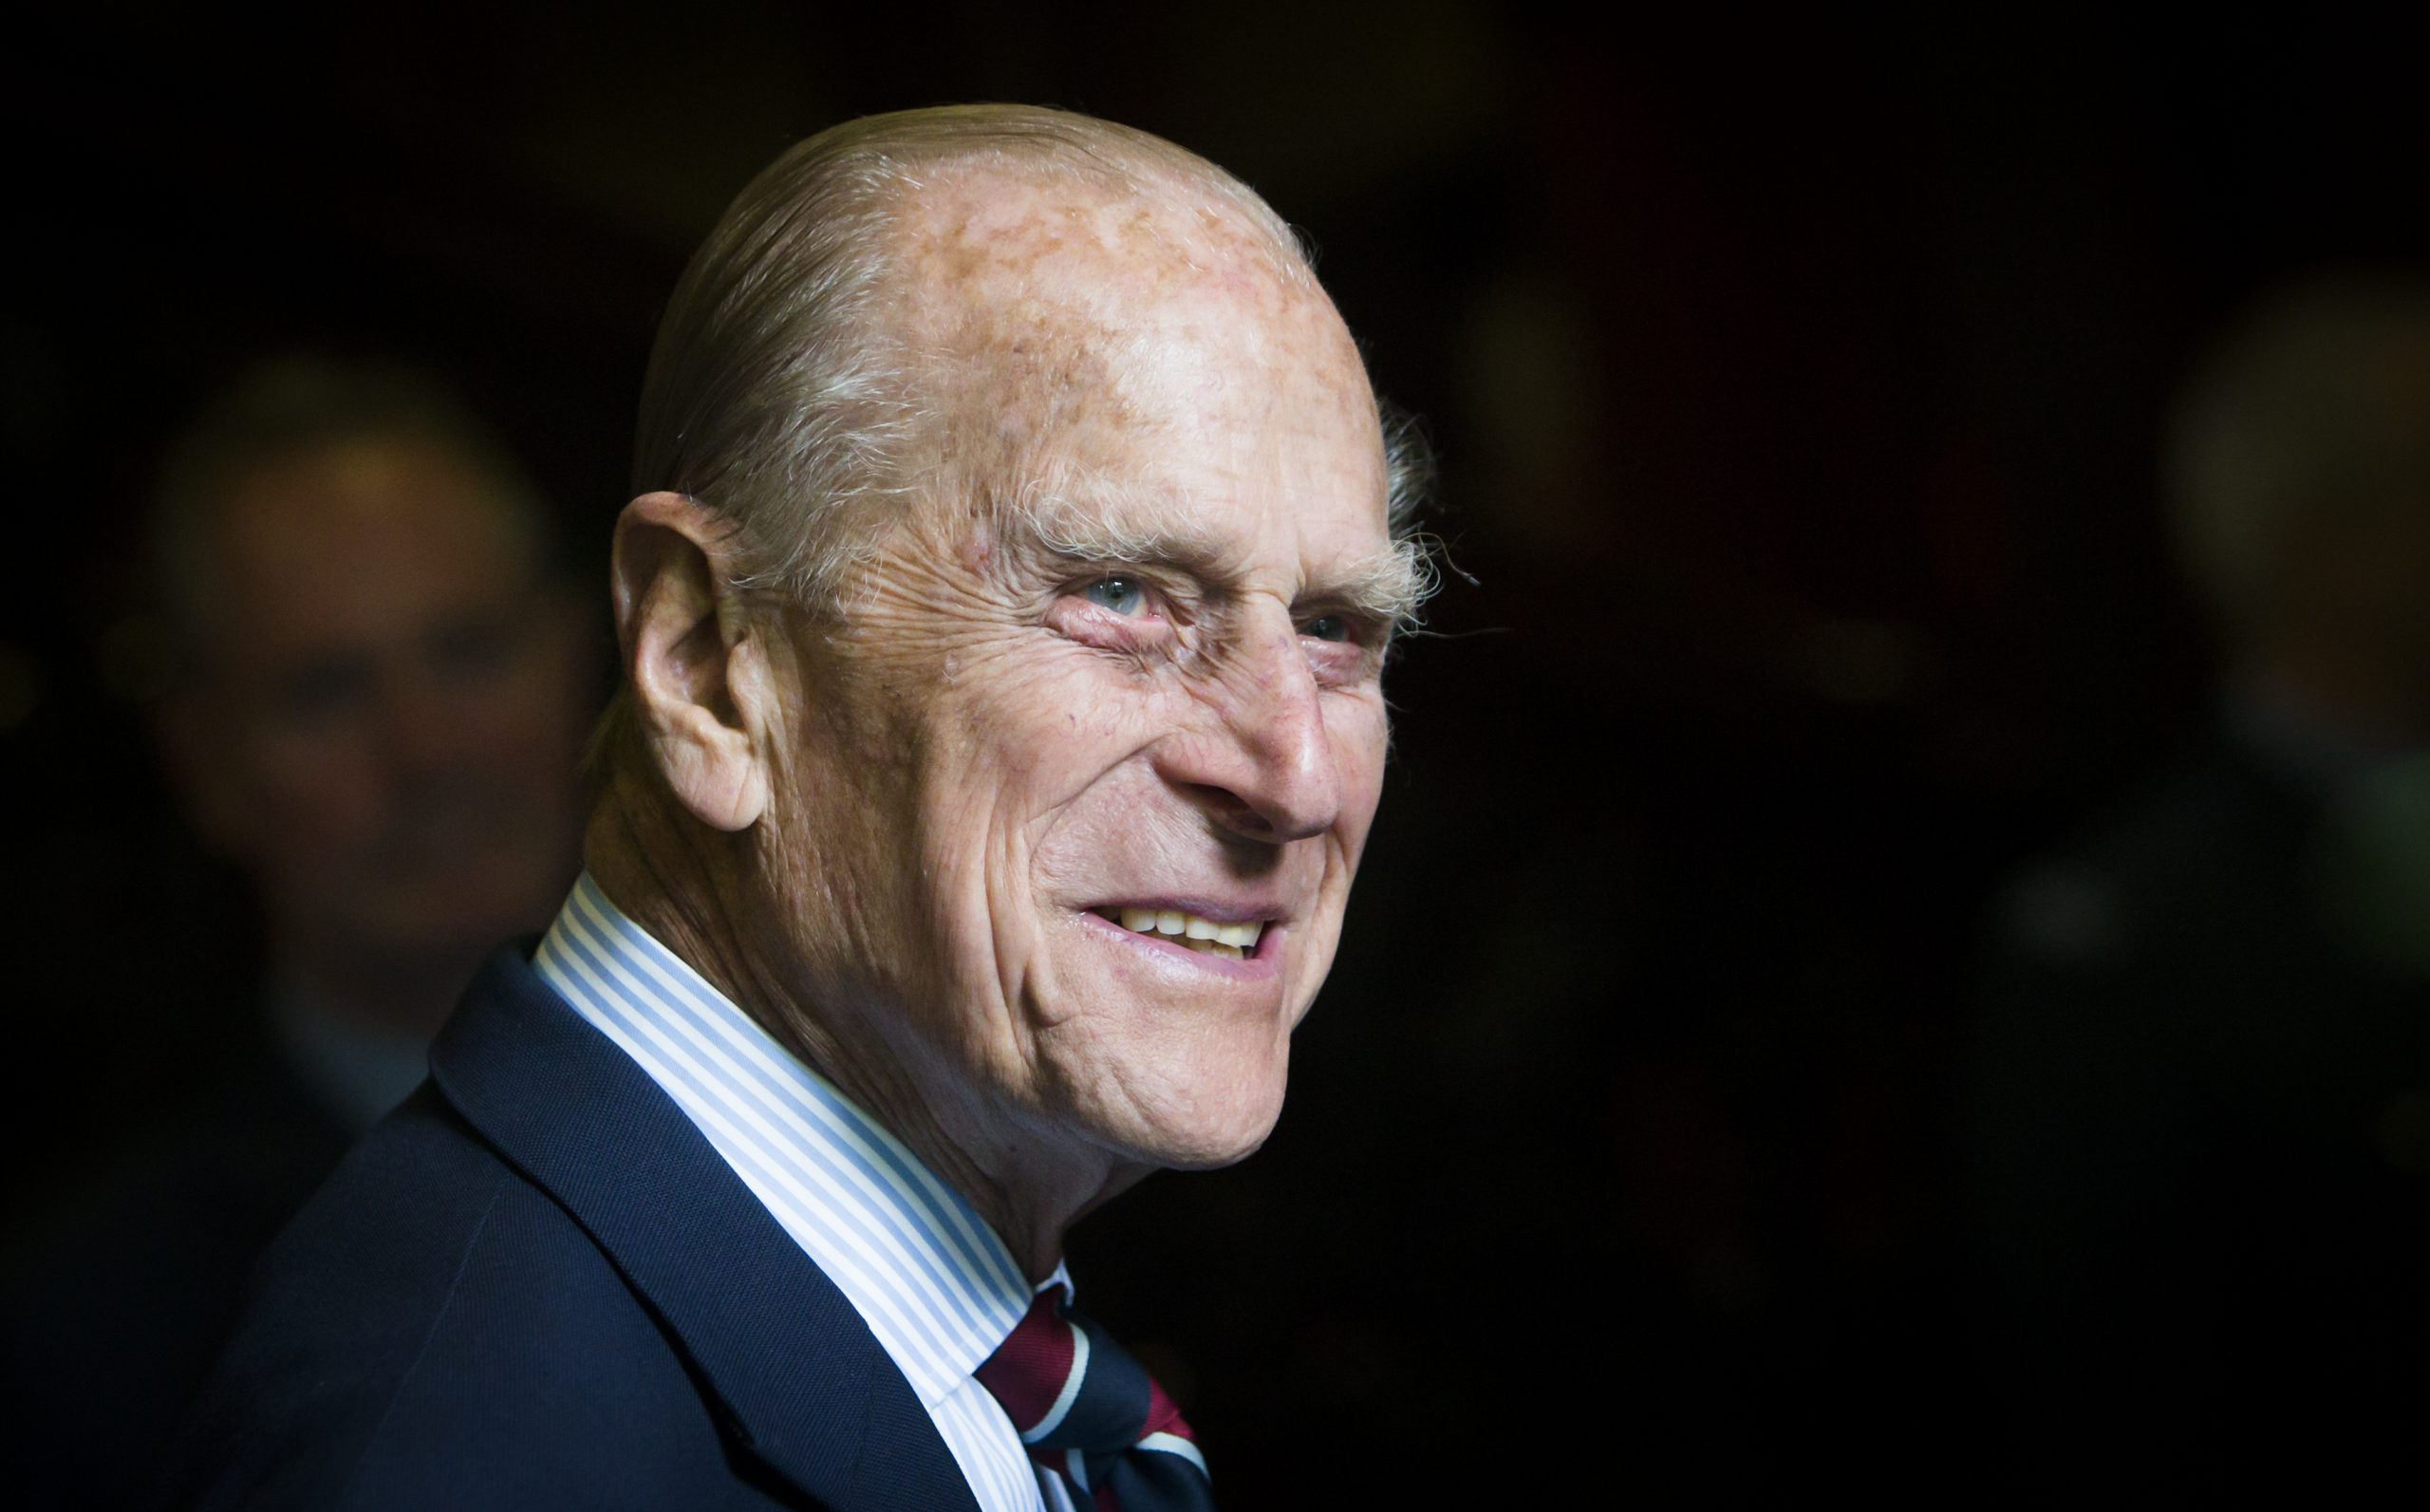 PRINCE PHILIP: A TRUE ENGLISH GENTLEMAN